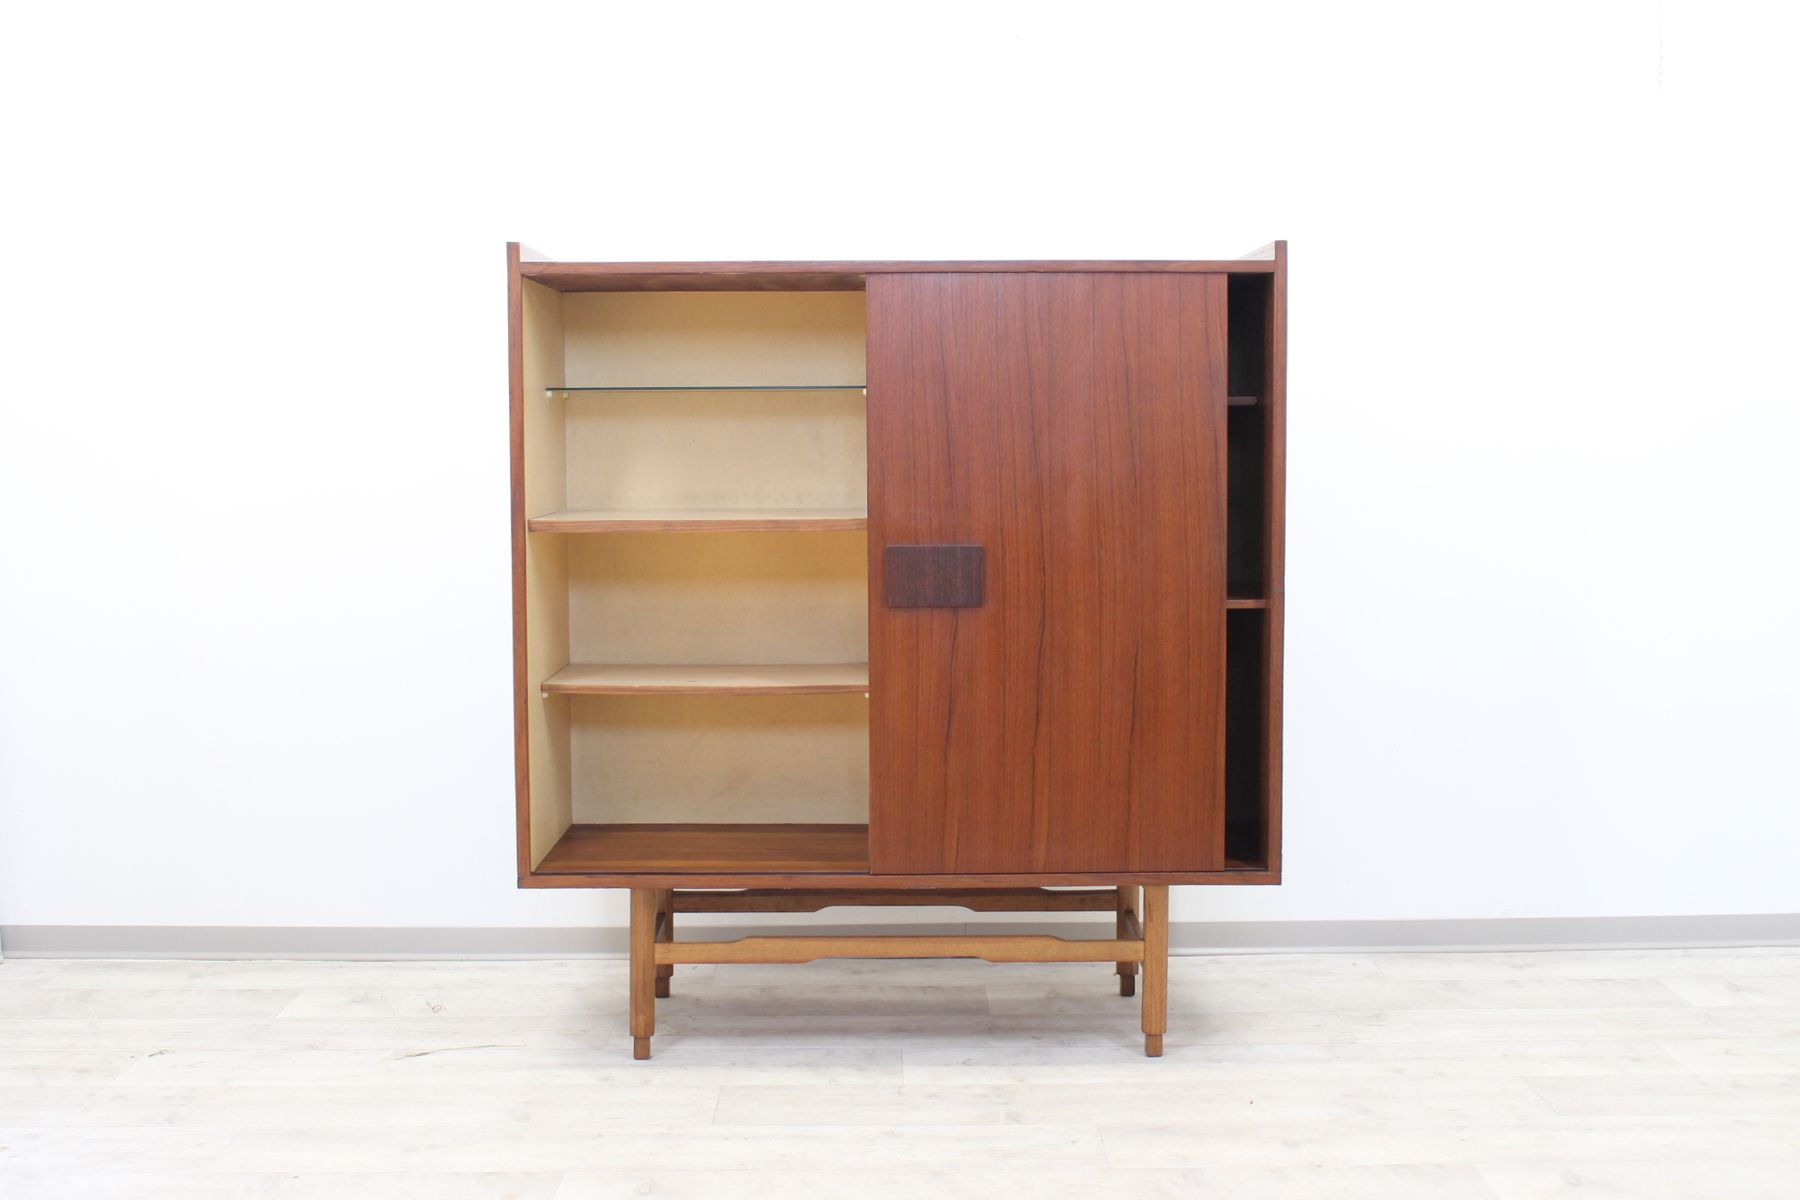 skandinavischer mid century teakholz schrank mit schiebet ren bei pamono kaufen. Black Bedroom Furniture Sets. Home Design Ideas